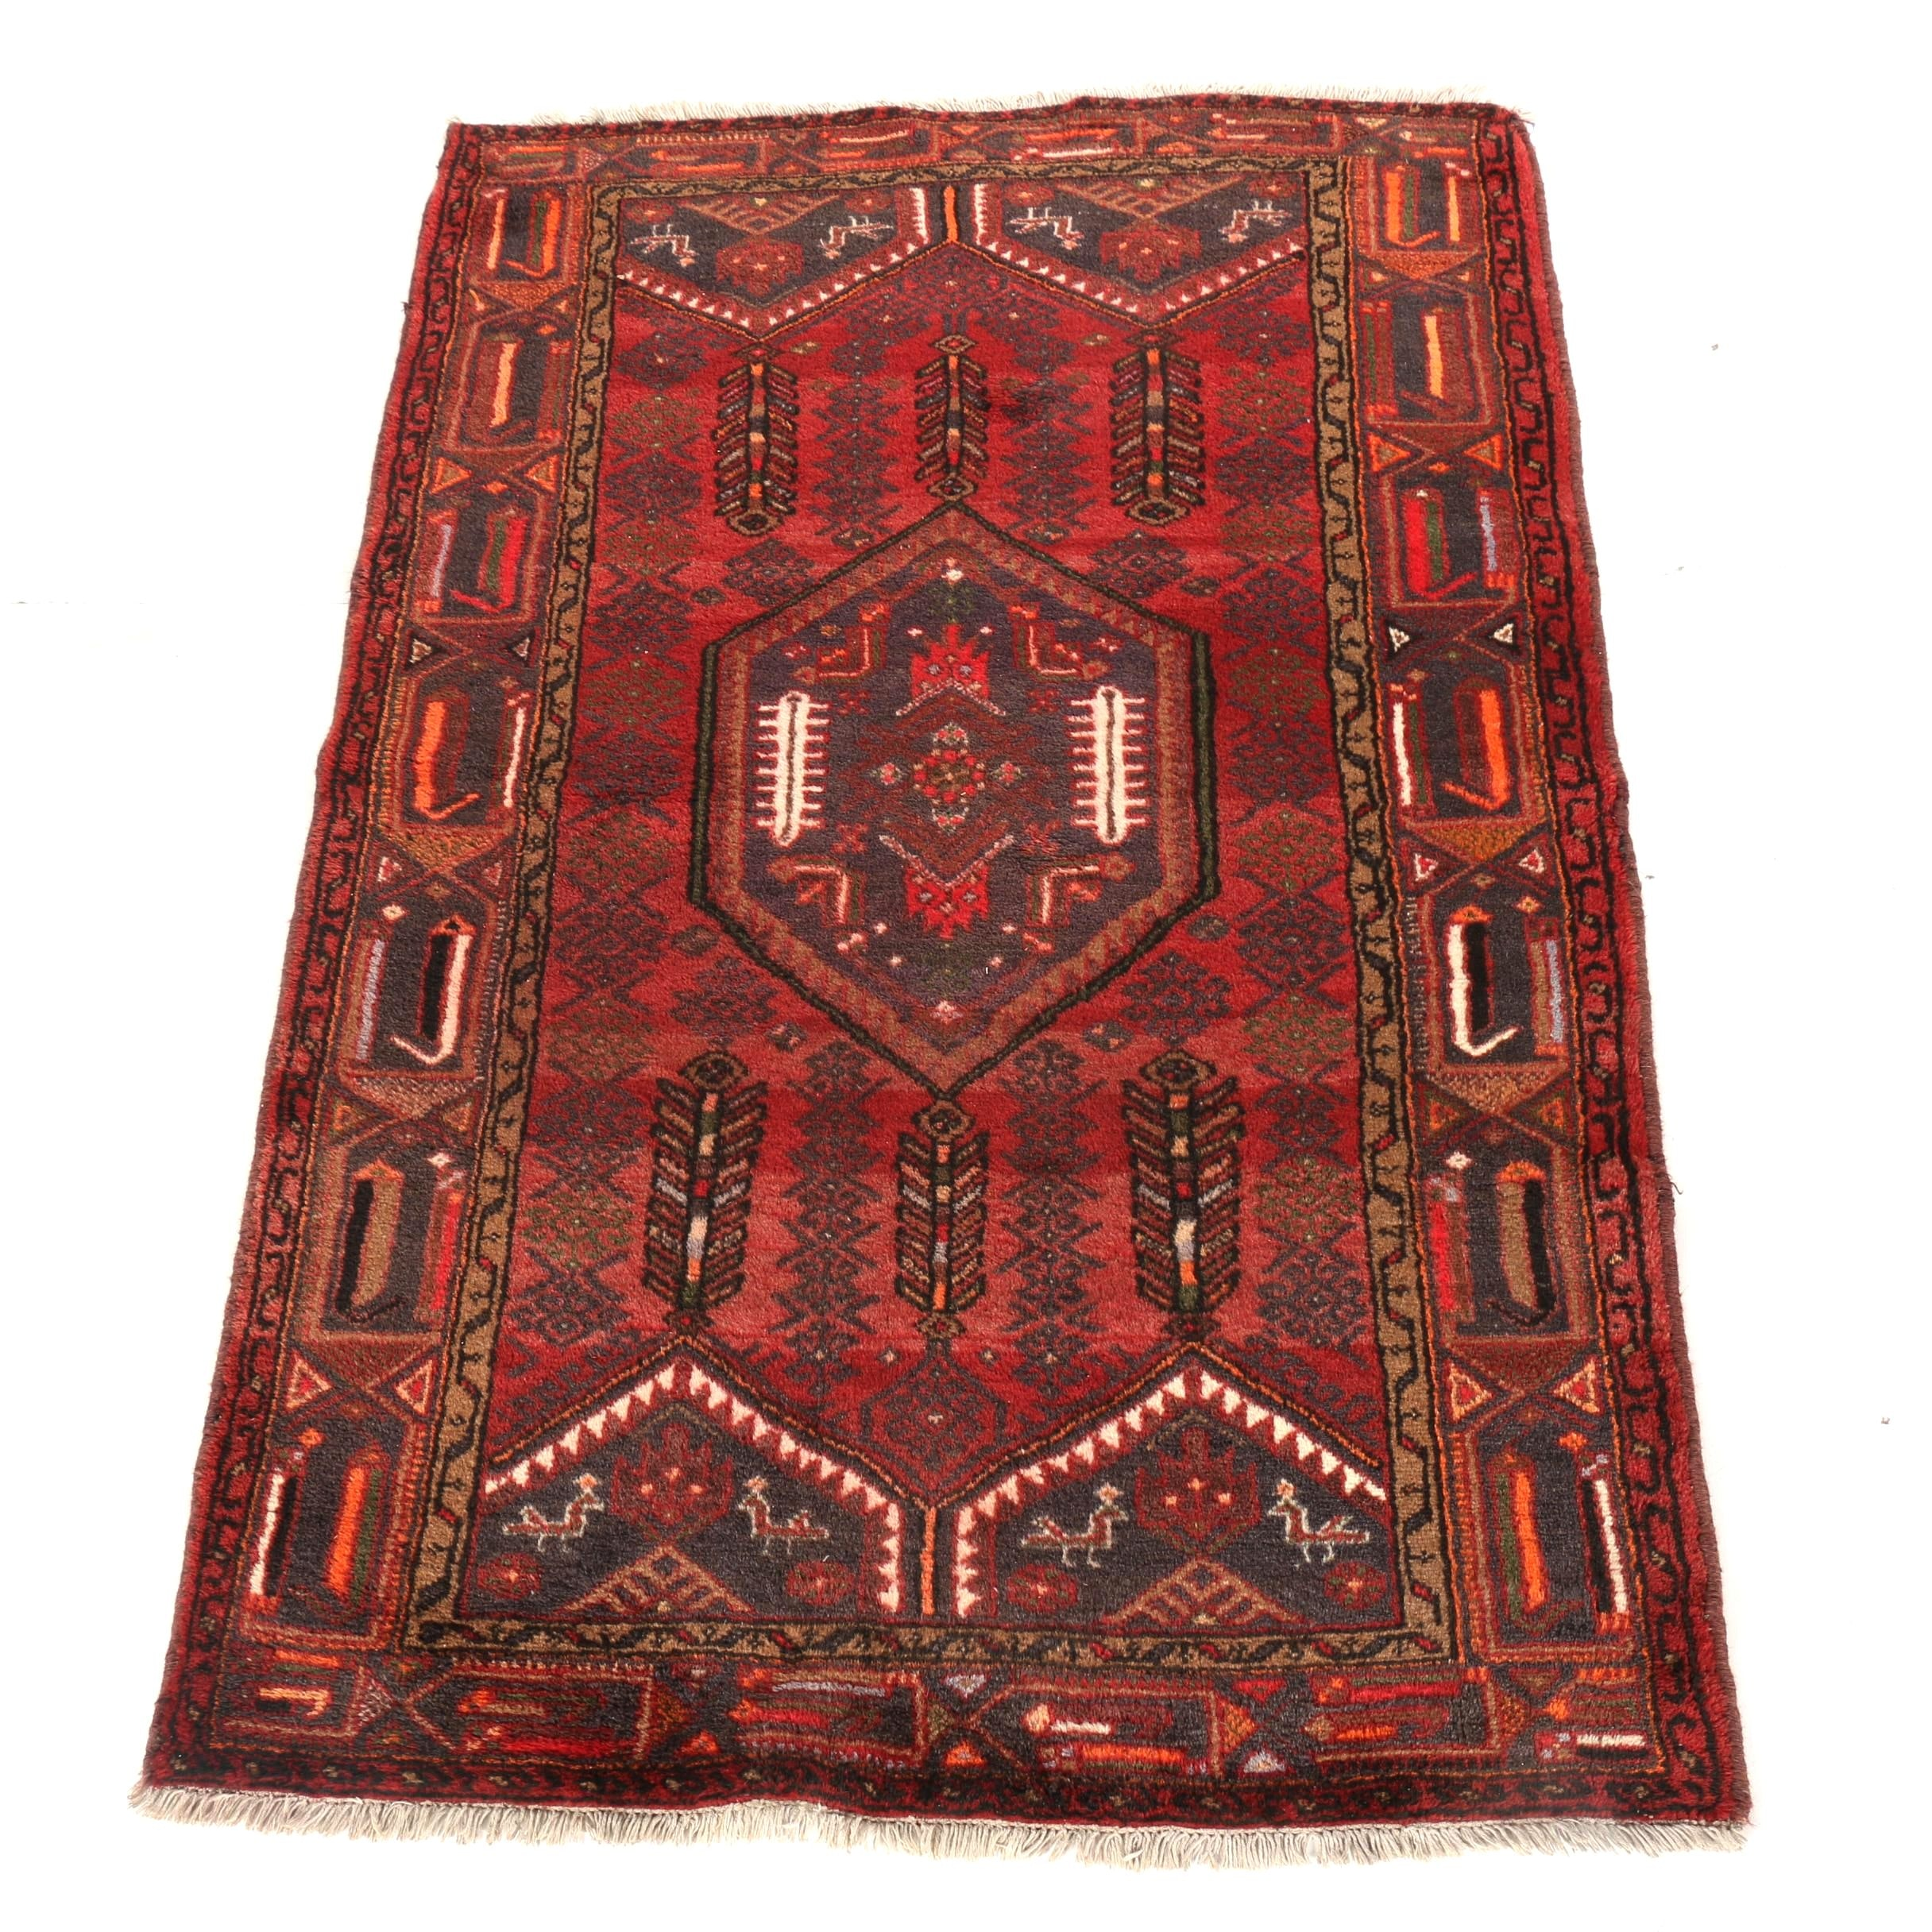 Hand-Knotted Caucasian Kazak Area Rug